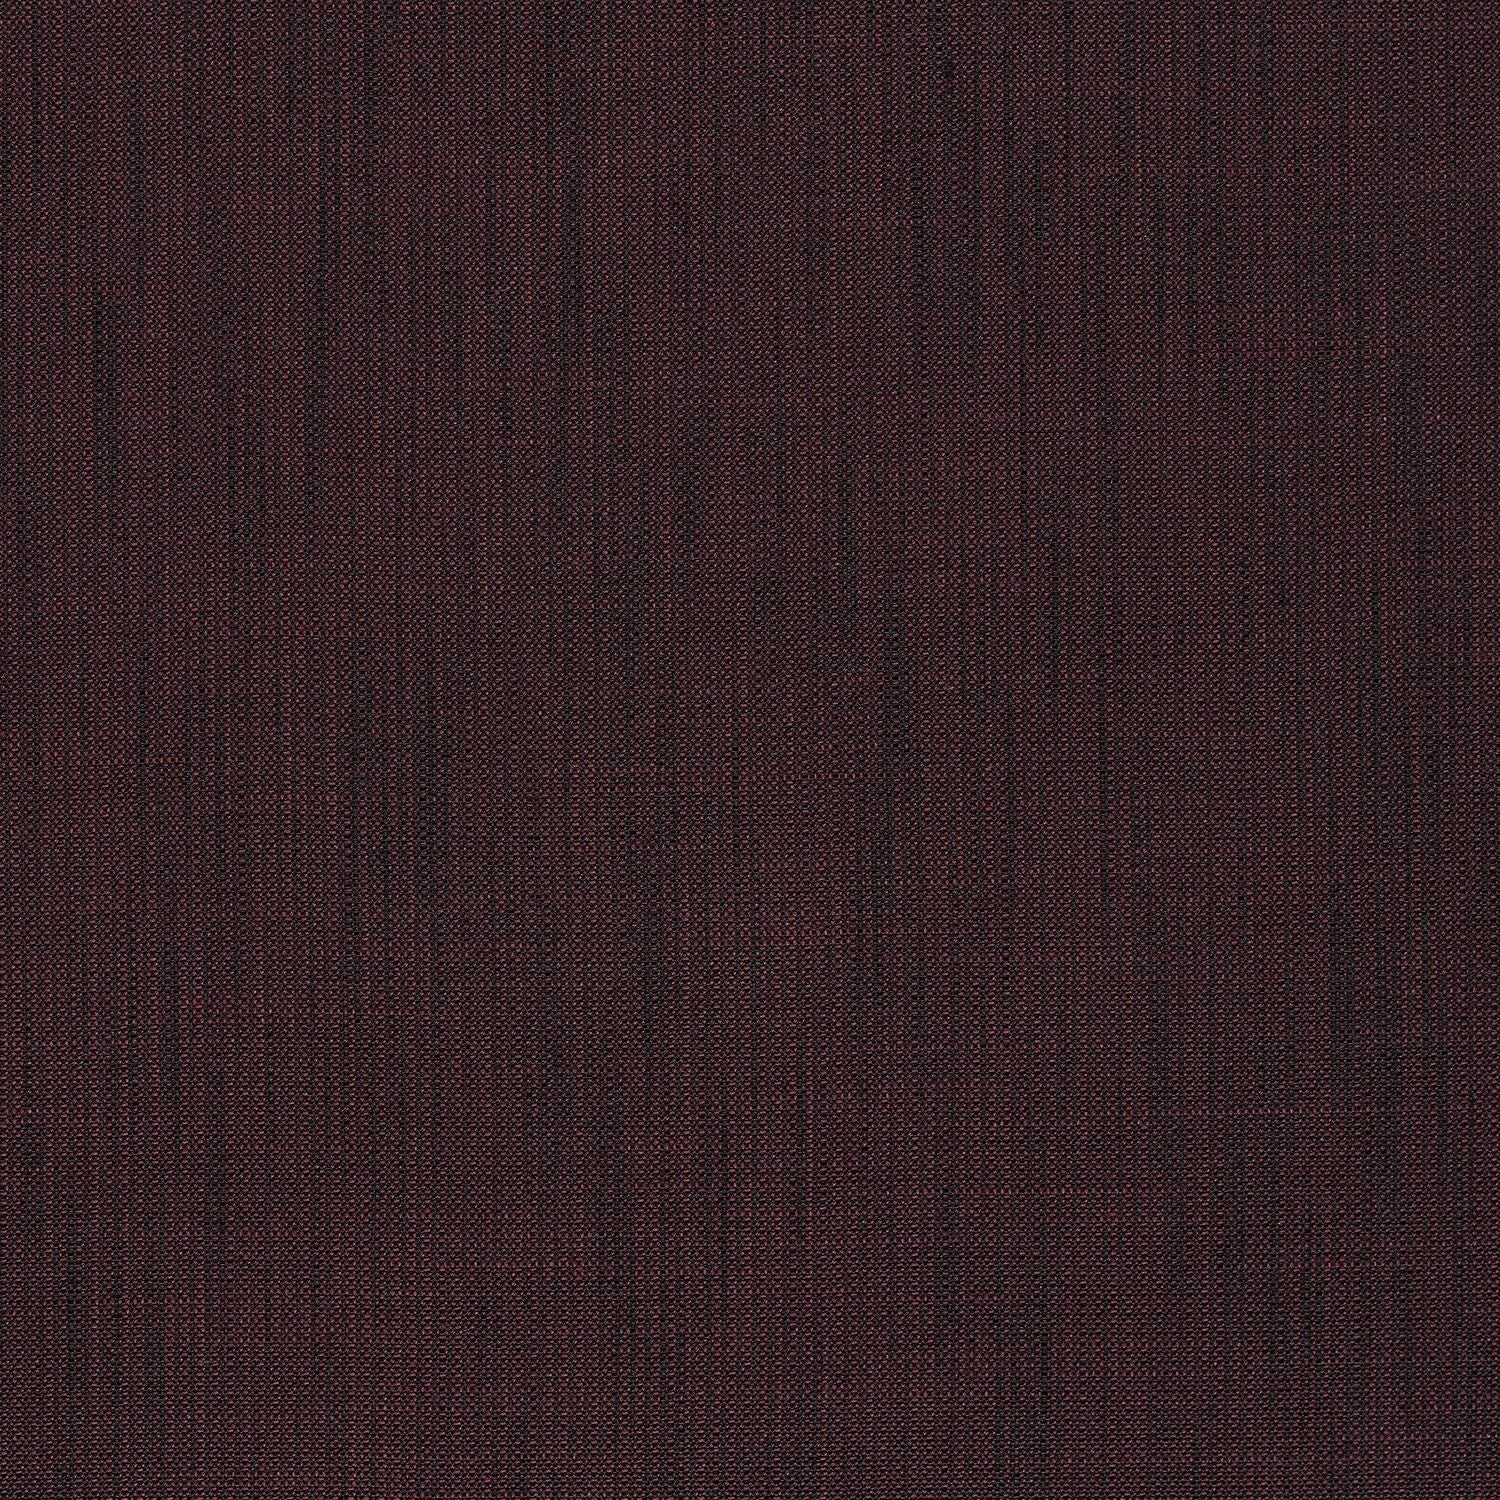 Duo Chrome - Oxblood - 4076 - 18